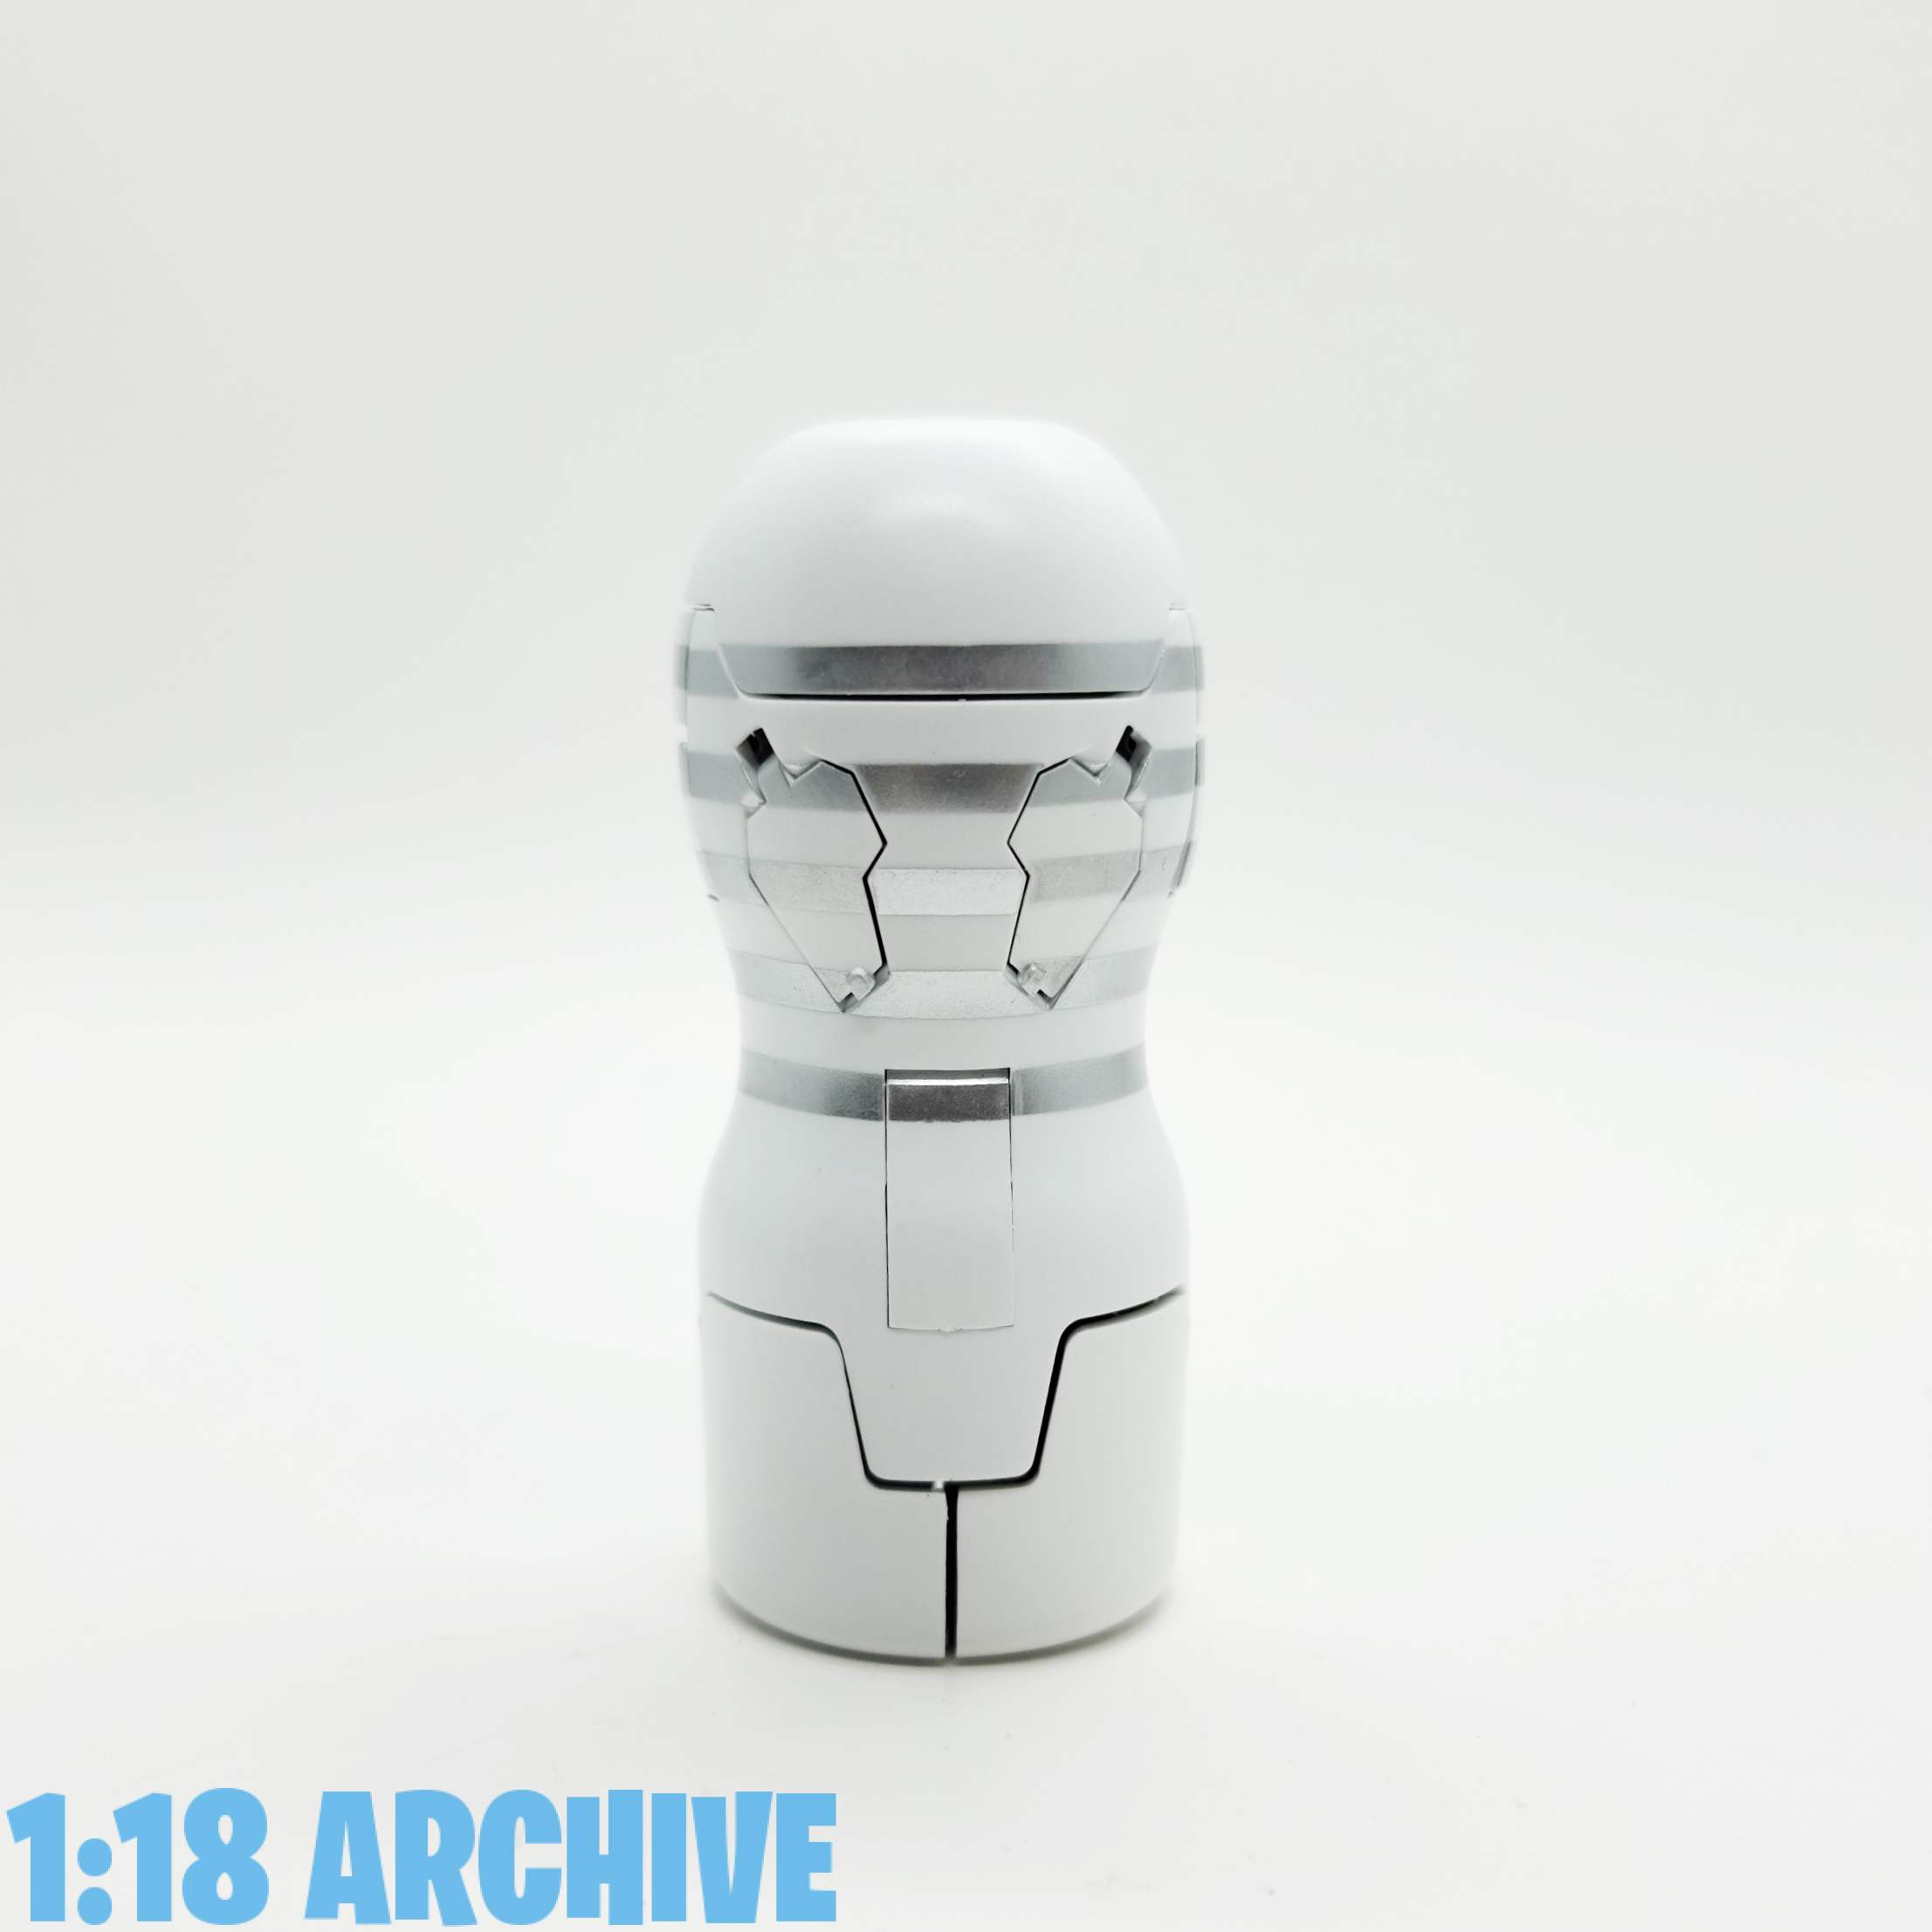 118_Action_Figure_Archive_Droid_of_the_Day_Reviews_Checklist_Guide_Tenga_Goodsmile_Droid